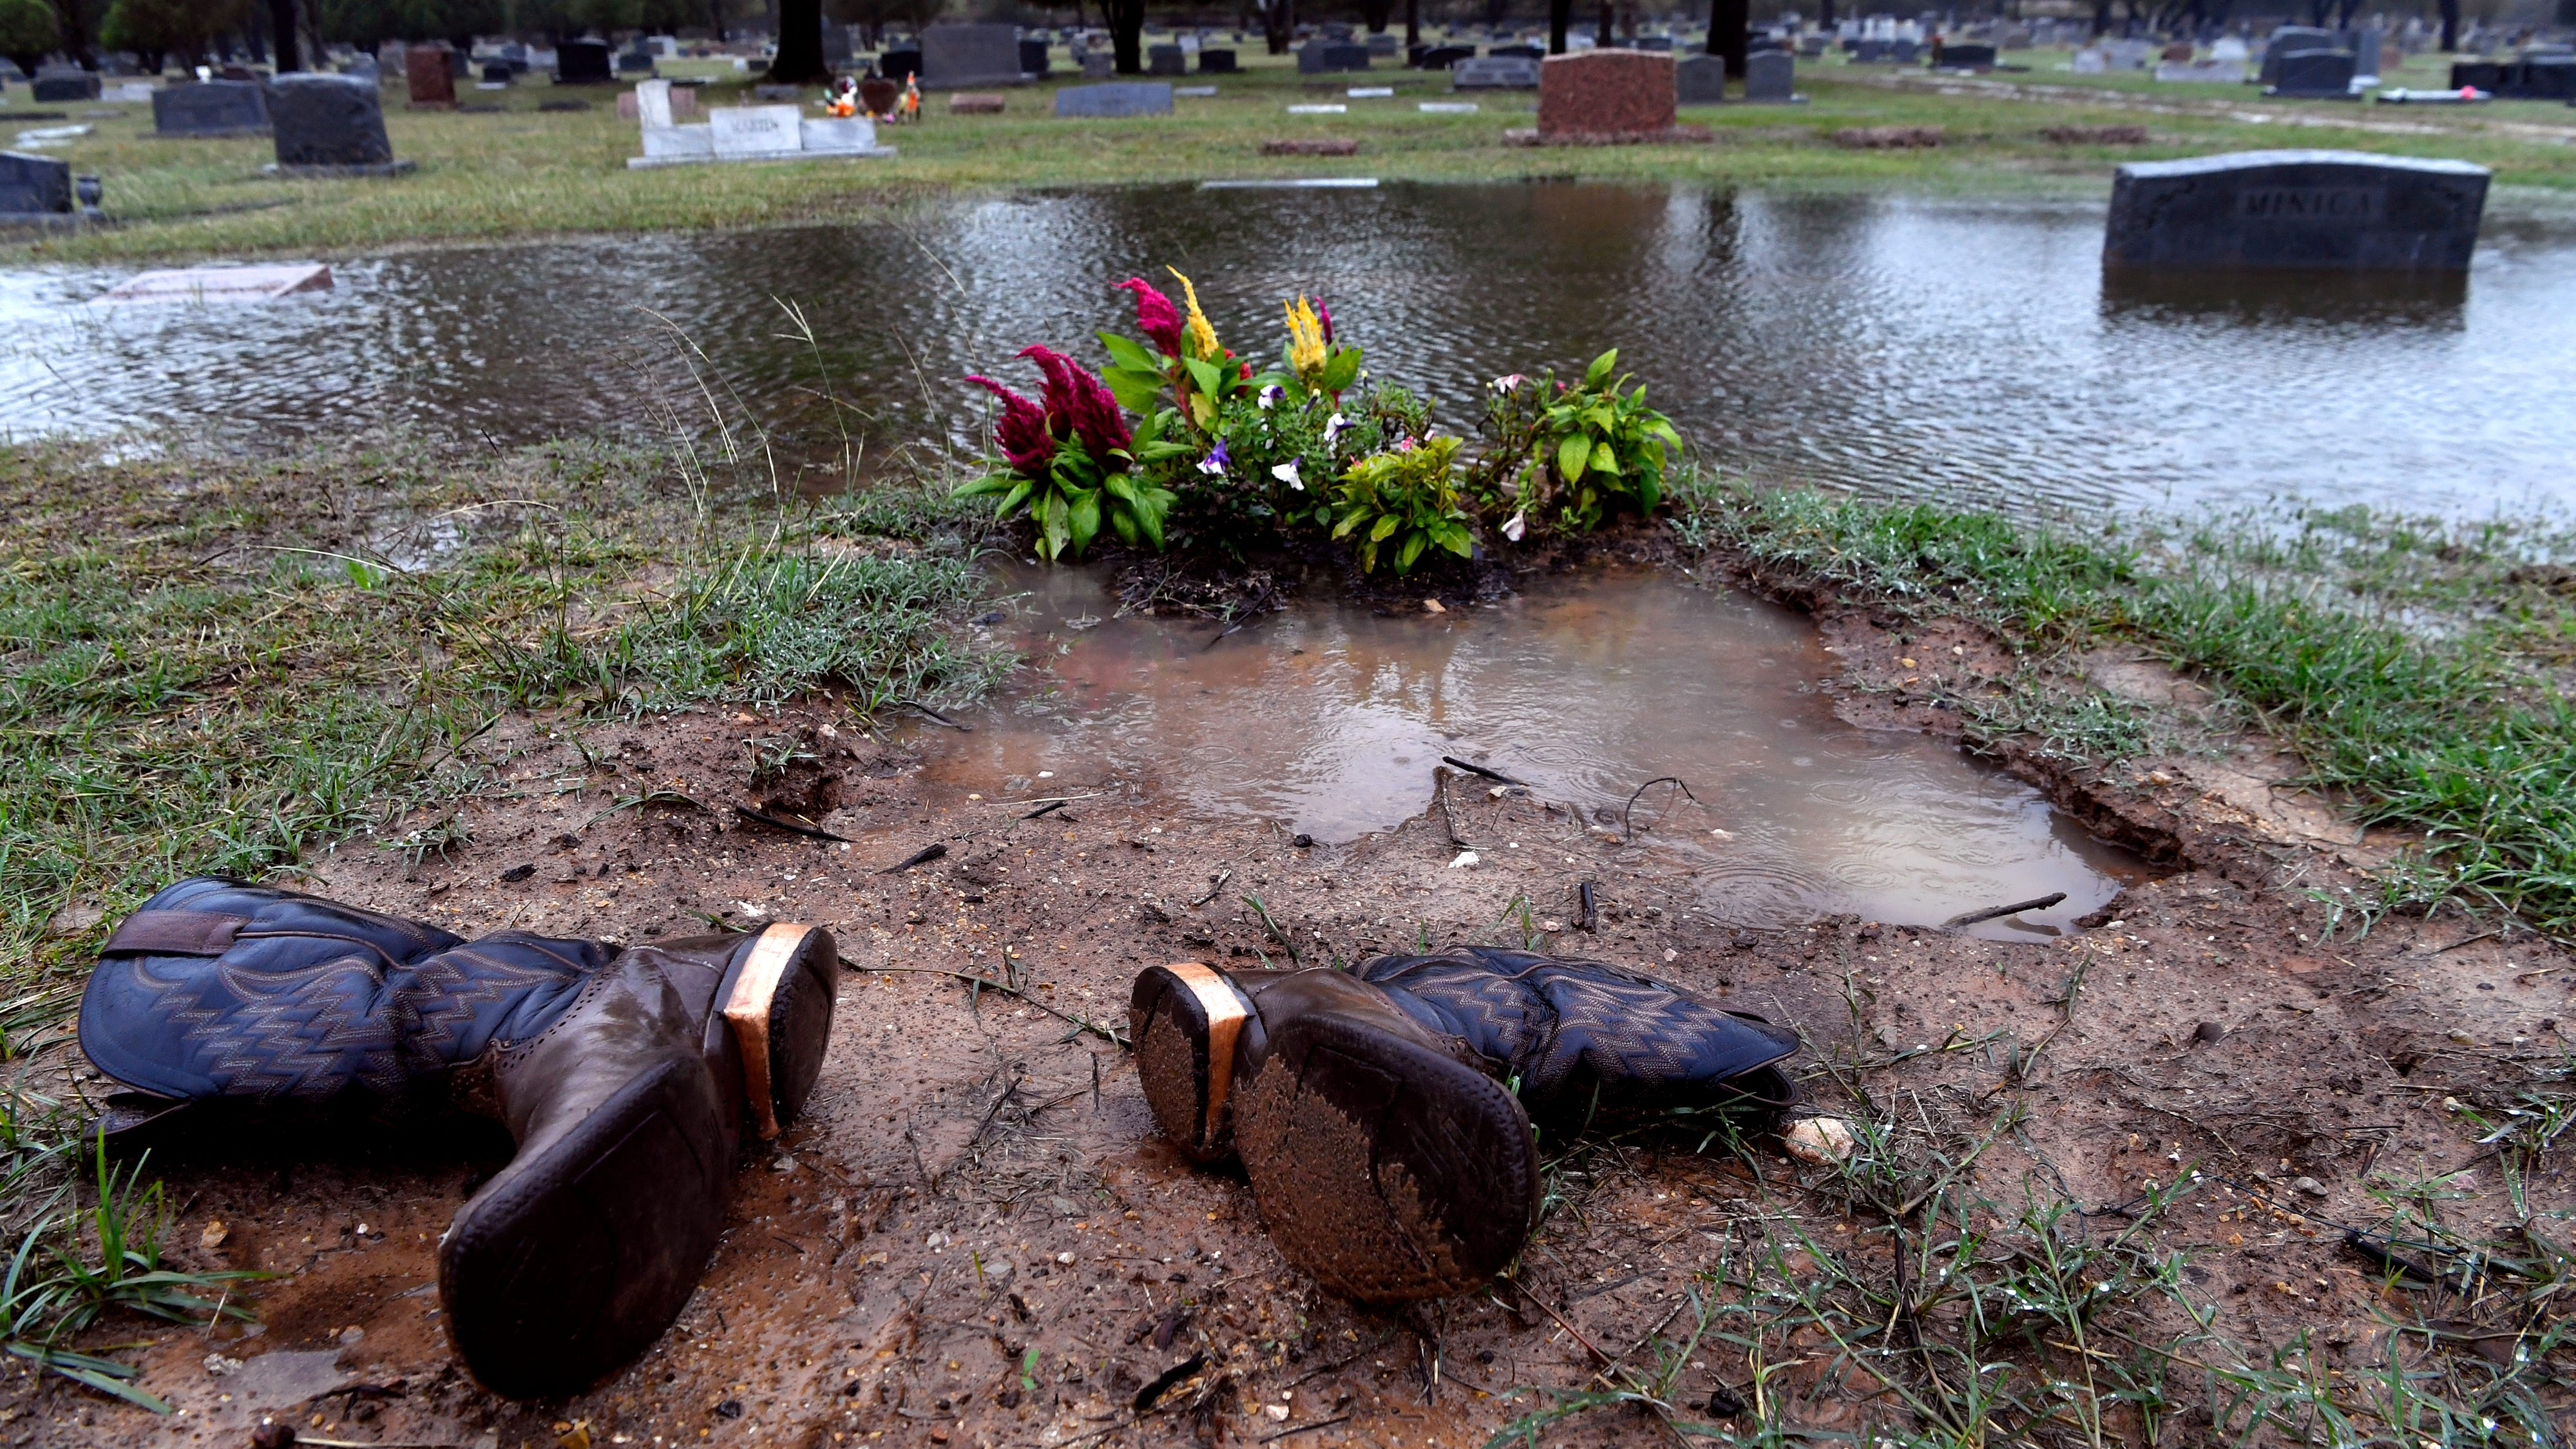 Boots are laid beside a grave as rains fall Wednesday Oct. 17, 2018 at Brownwood's Greenleaf Cemetery. The resting place of author Robert E. Howard, the cemetery turned 150 years-old this year.